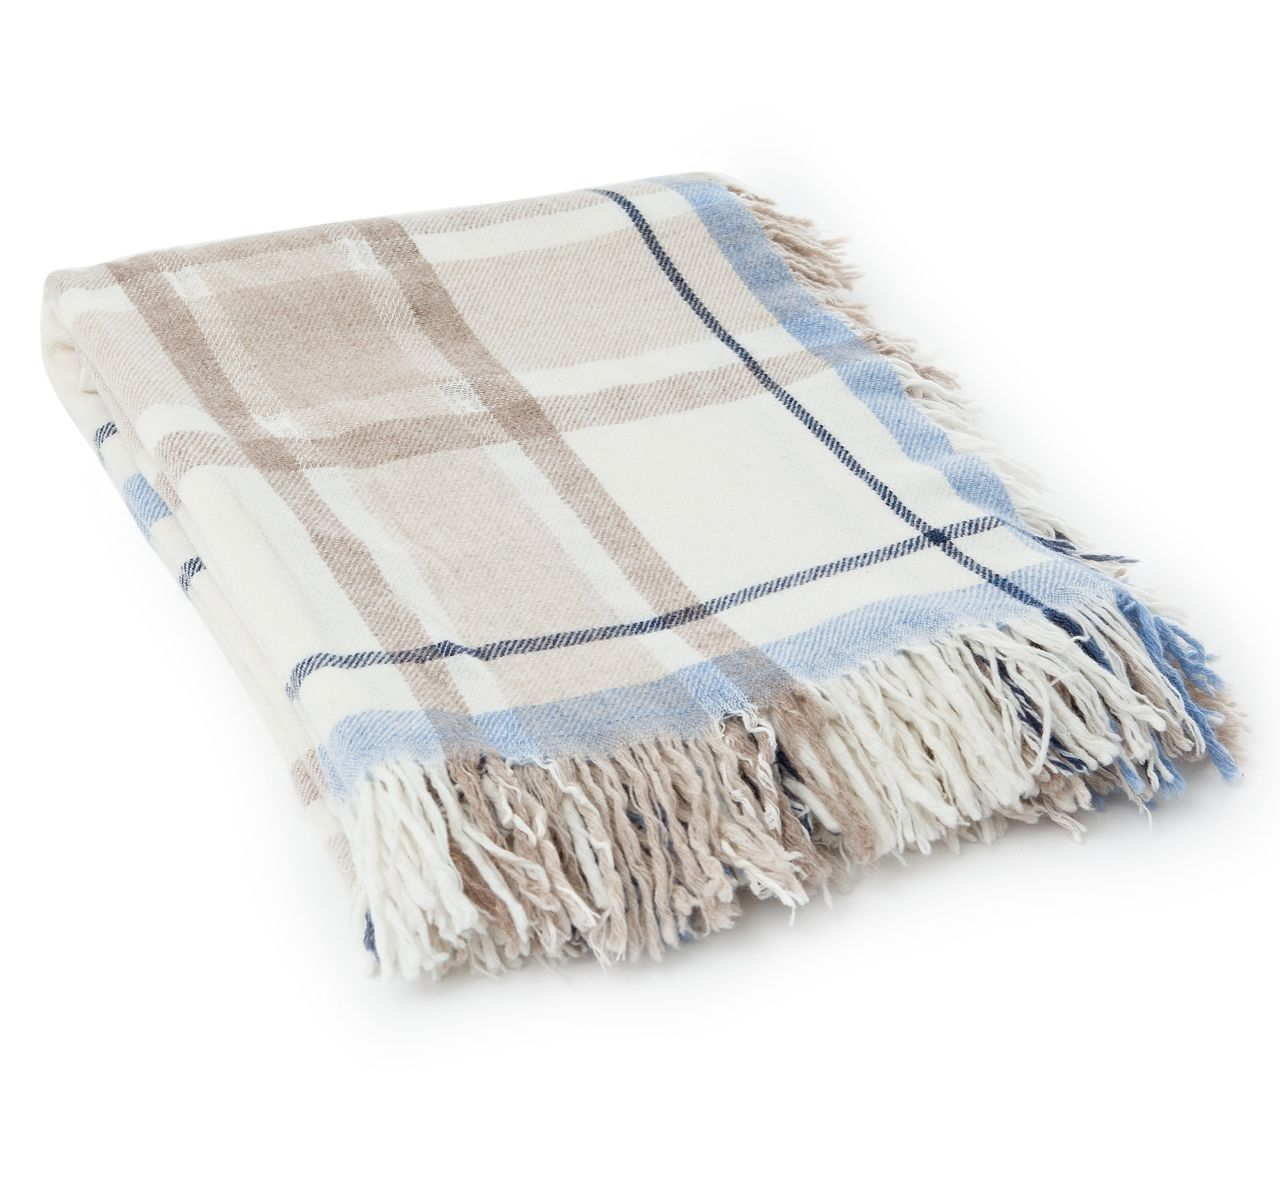 Wolldecke Taupe Lexington Decke Wool Checked Beige Blau